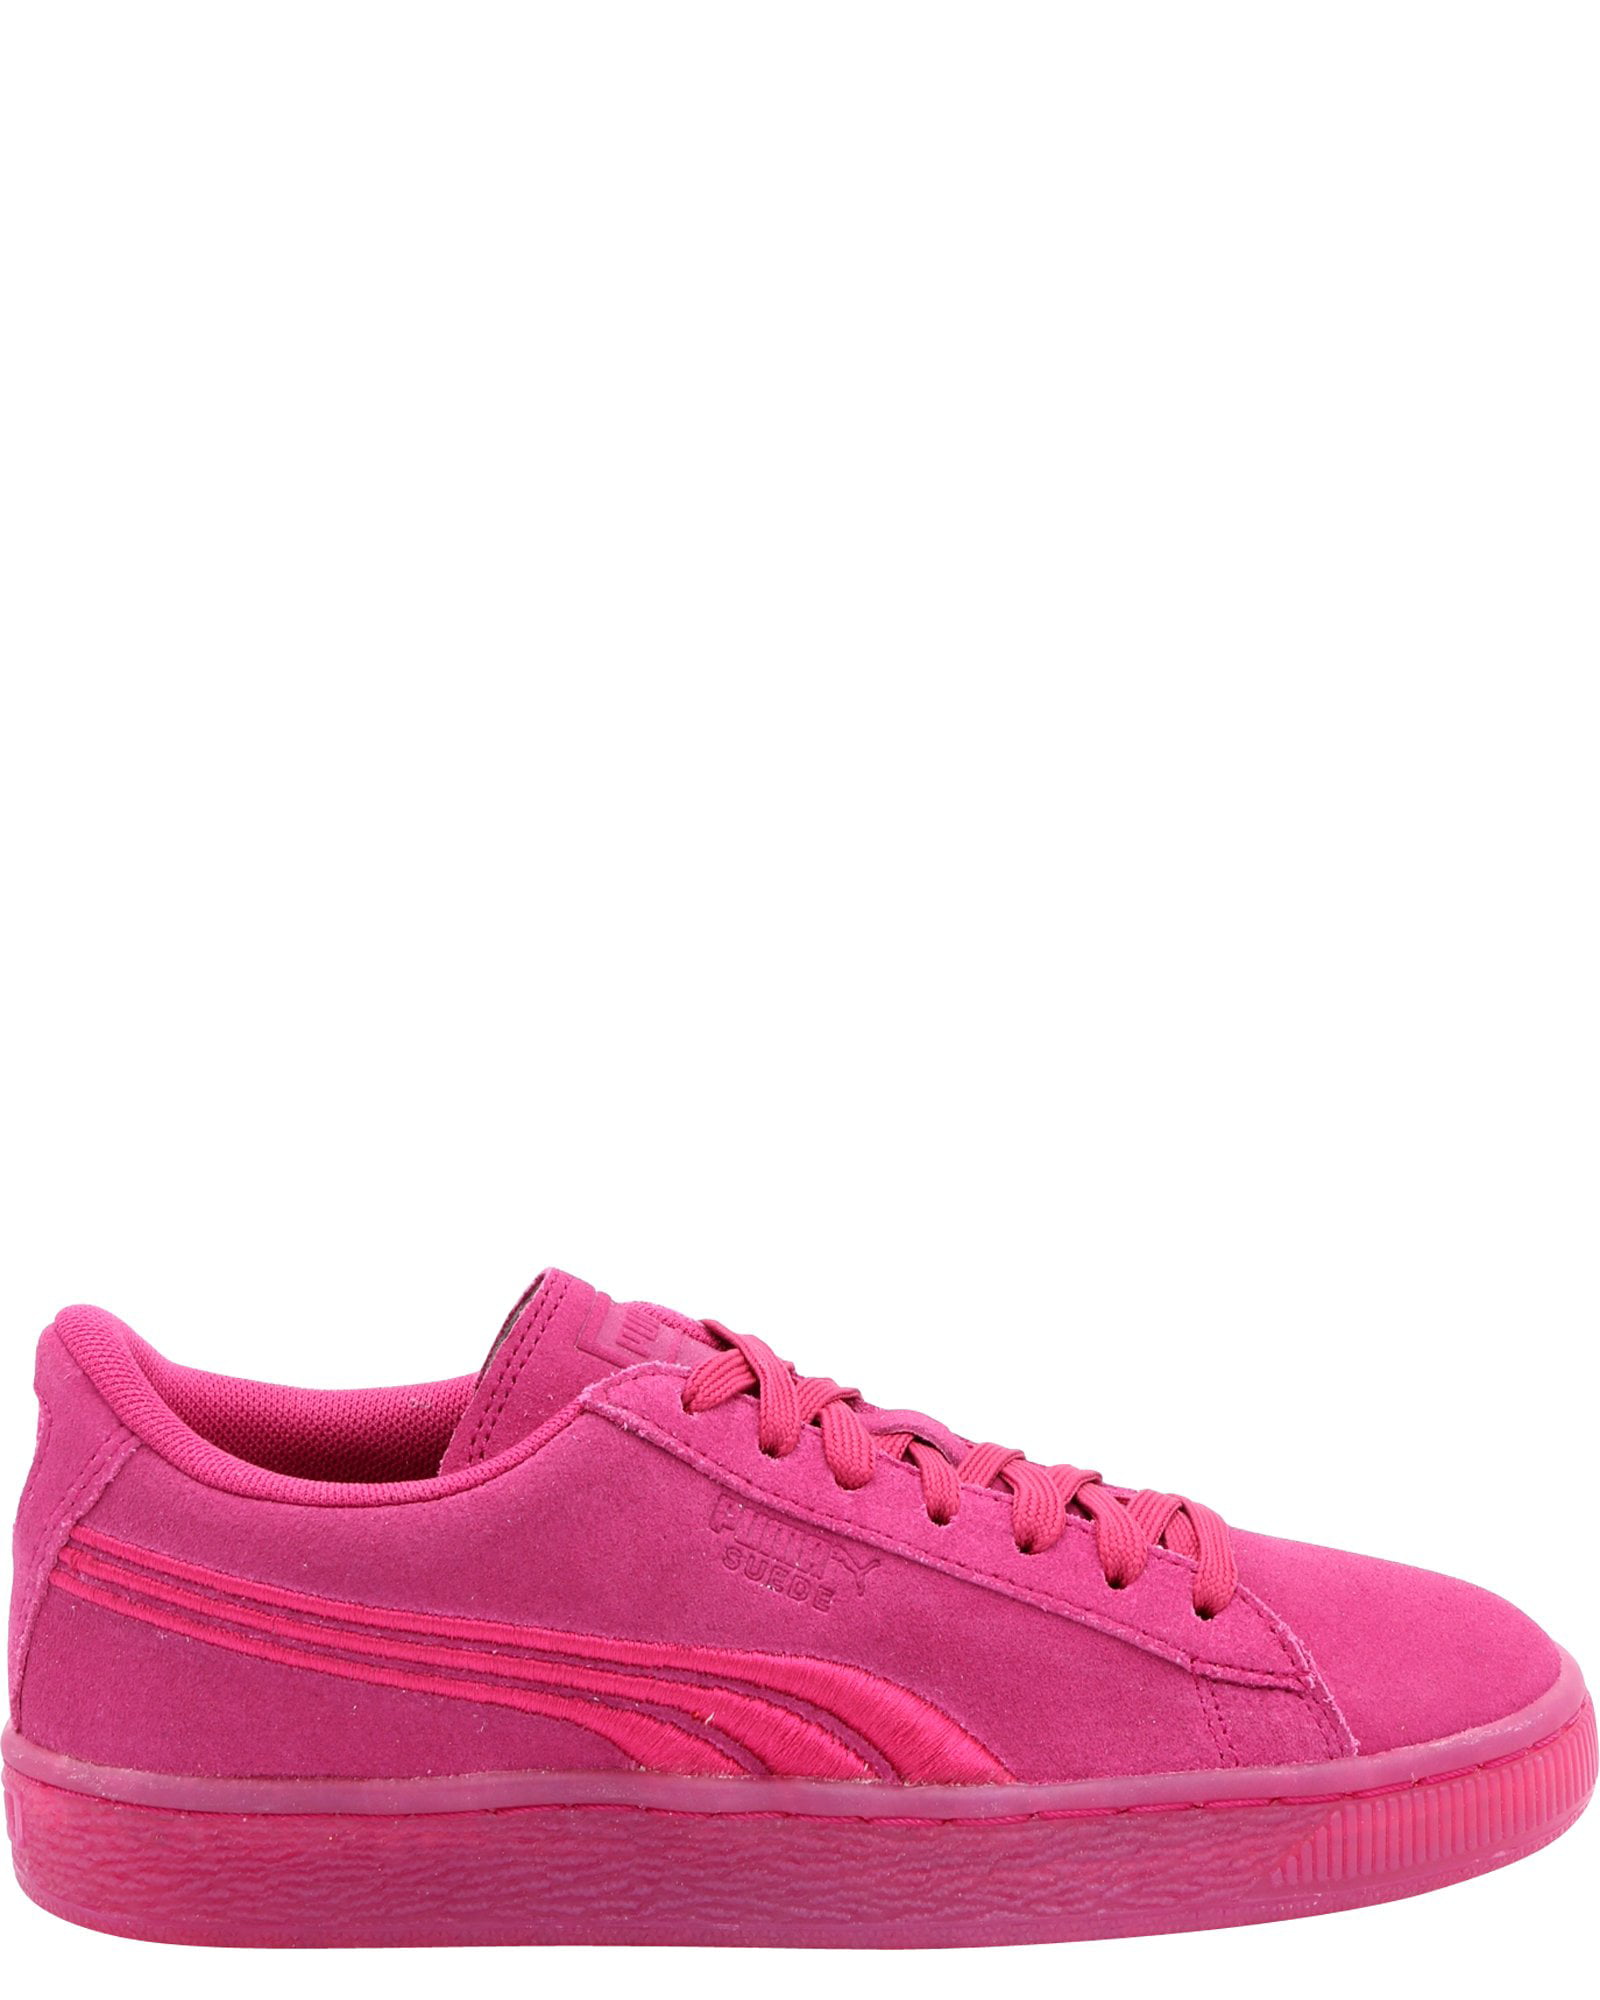 Puma 365020-01 : Suede Classic Badge Youth Sneaker Iced Pink